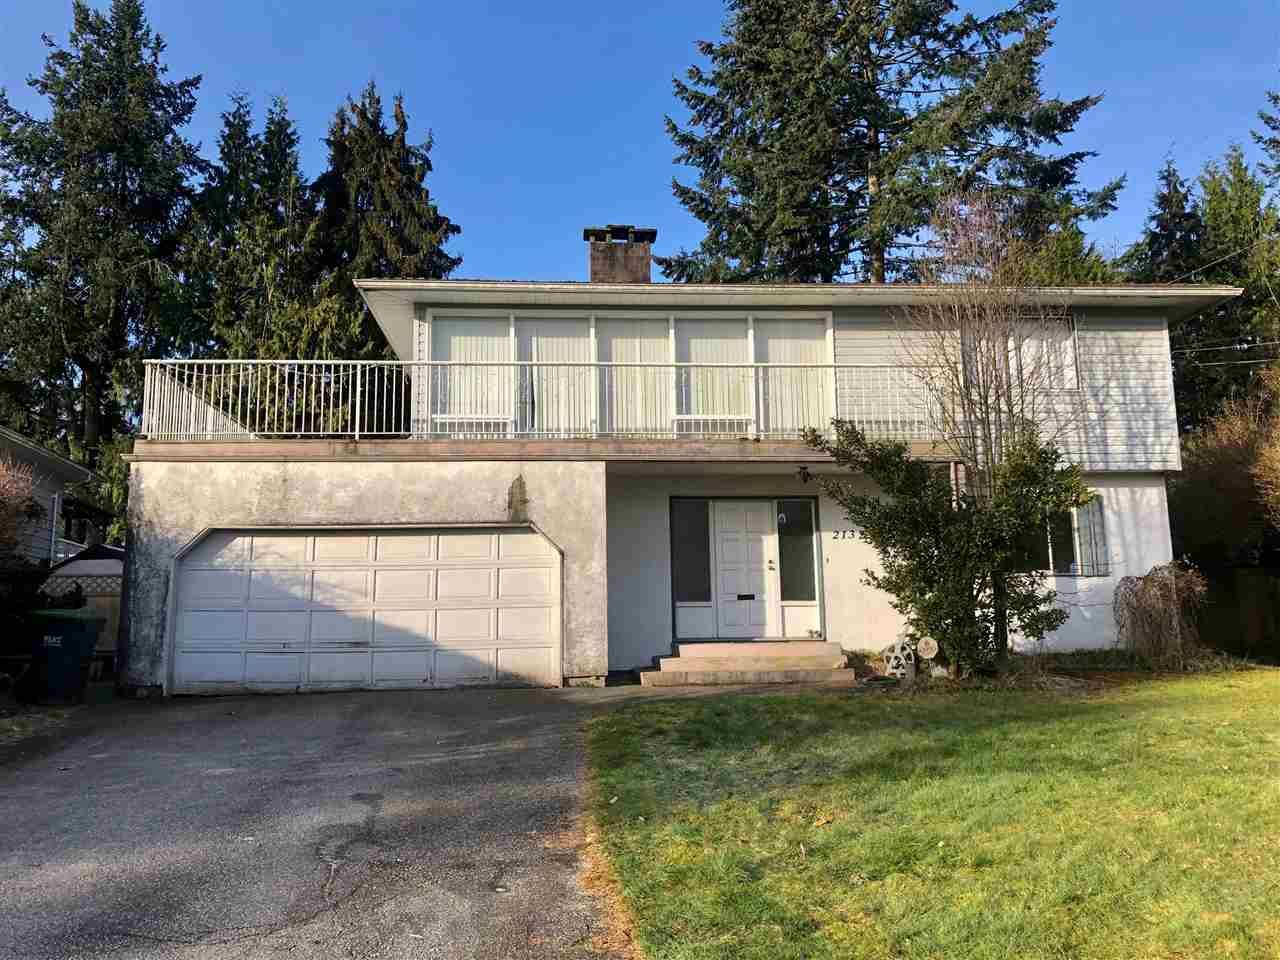 Main Photo: 2132 ANITA Drive in Port Coquitlam: Mary Hill House for sale : MLS®# R2551778